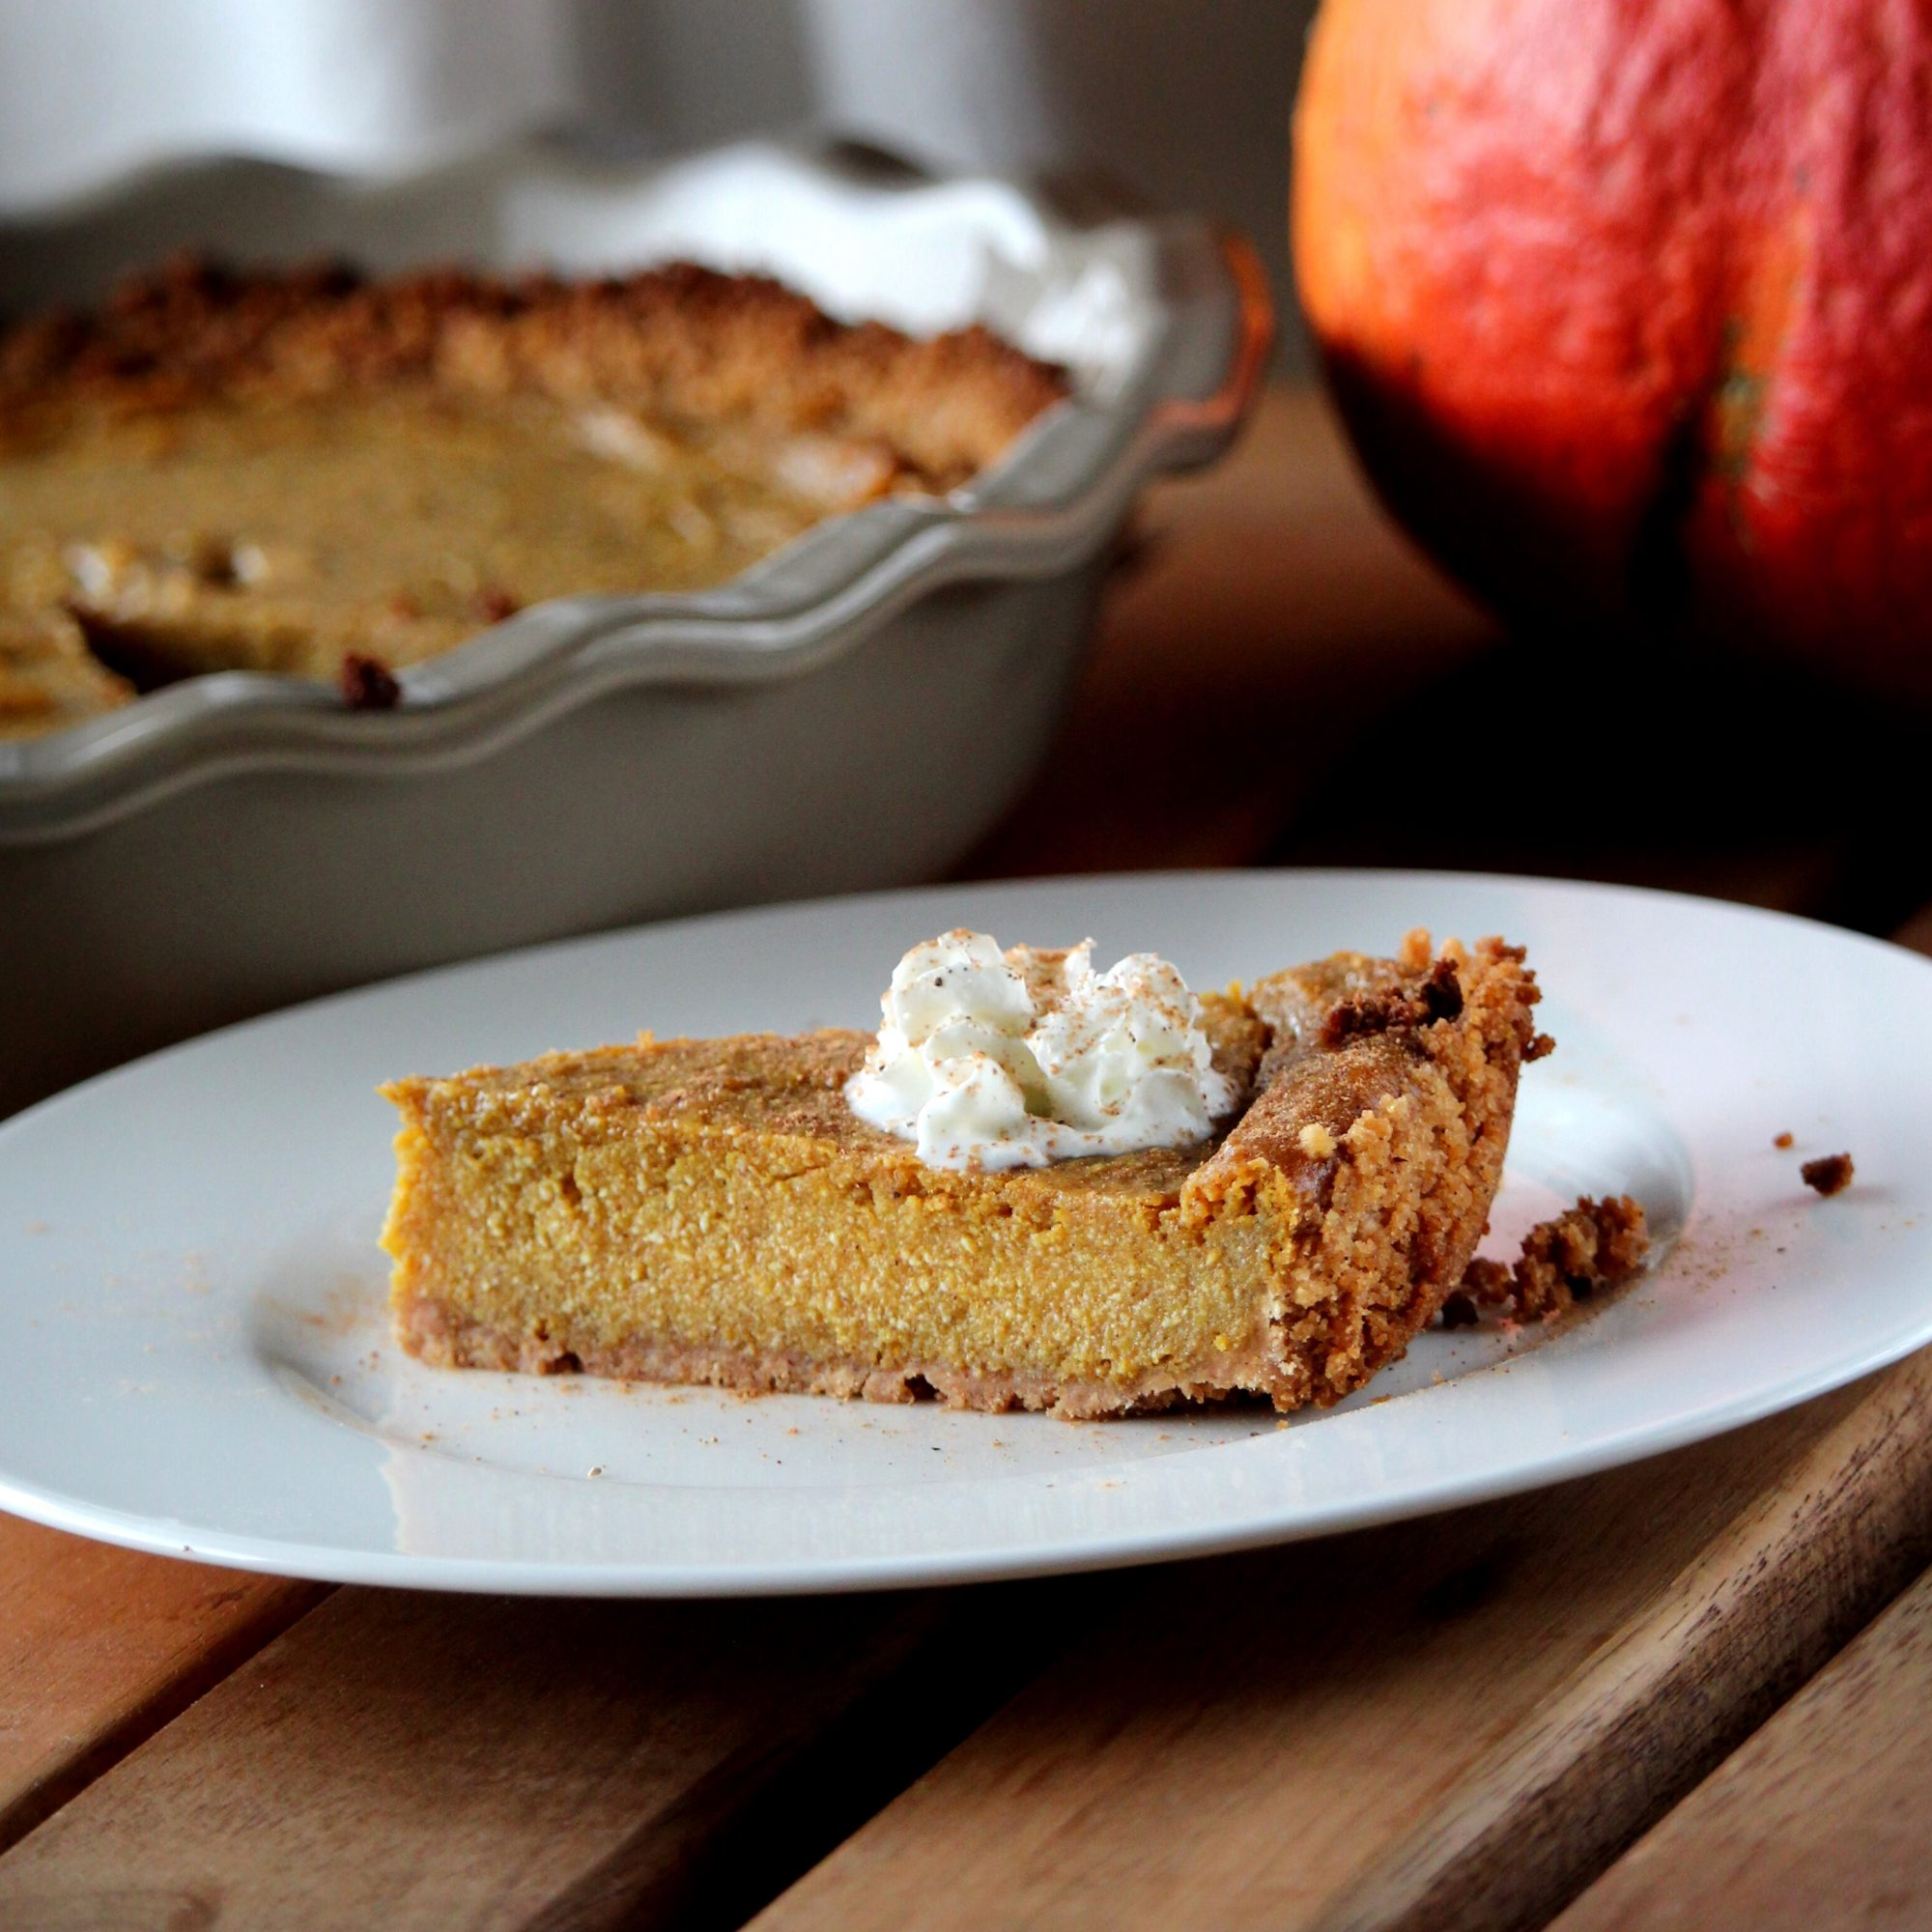 slice of pumpkin pie with whipped topping